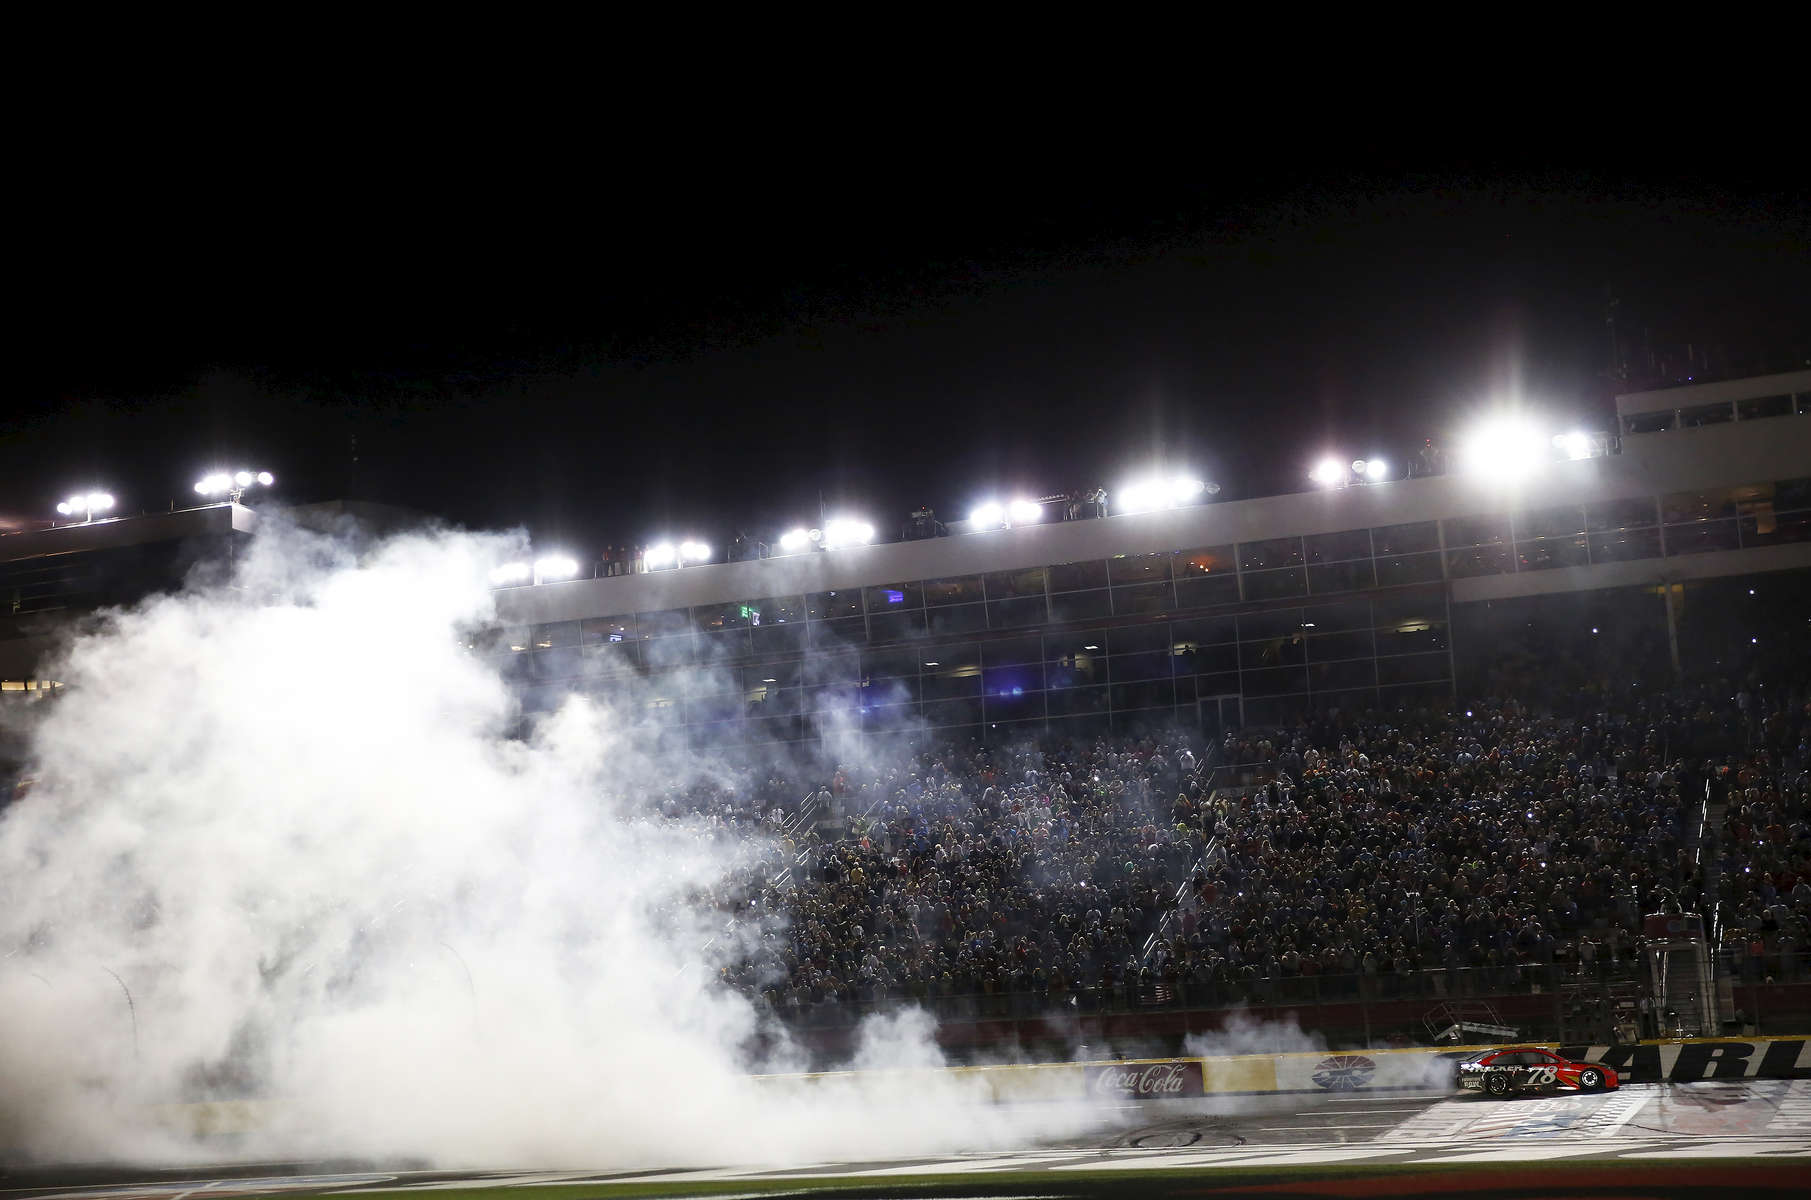 Sports POY: Runner UpEamon Queeney, North State Journal Martin Truex Jr. in the No. 78 Furniture Row Racing Toyota does a celebratory burnout after the Coca-Cola 600 at Charlotte Motor Speedway, Sunday, May 29, 2016. Martin Truex Jr. made NASCAR history in his No. 78 Furniture Row Racing Toyota by leading more laps and more miles than any other driver in any race in NASCAR history while landing himself in Victory Lane.